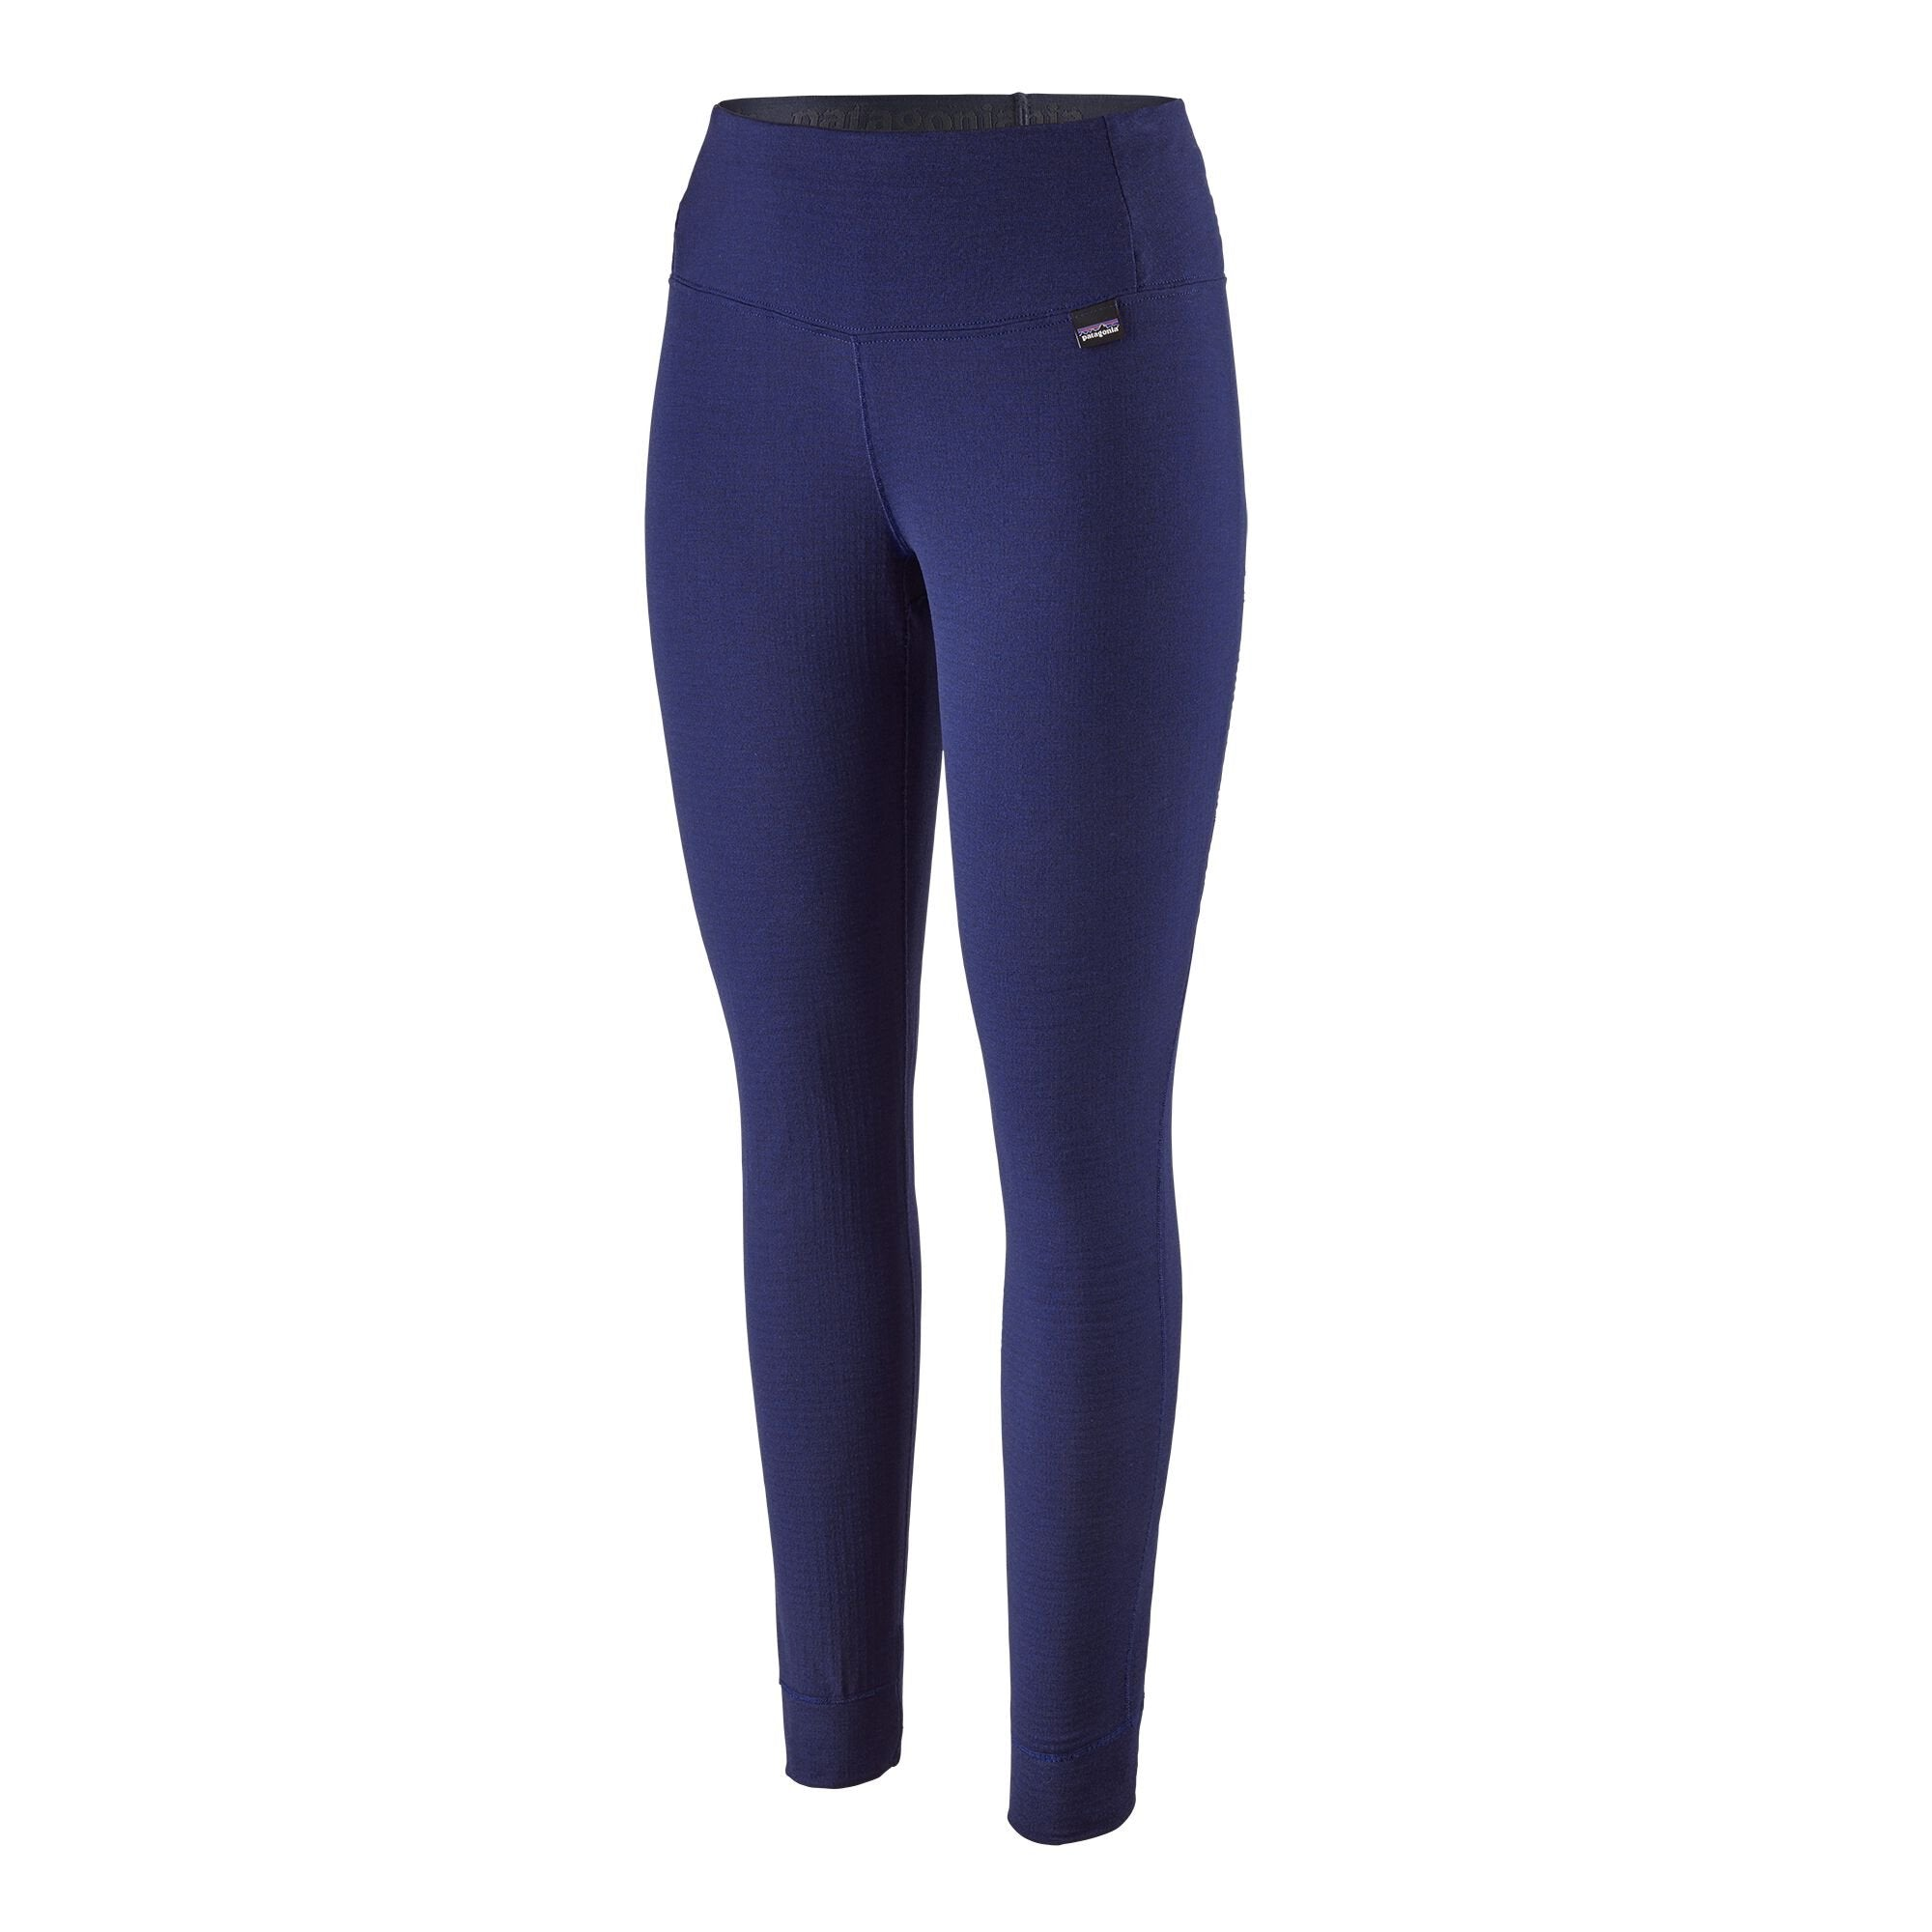 Calzas Mujer Capilene® Thermal Weight Bottoms Azul Patagonia